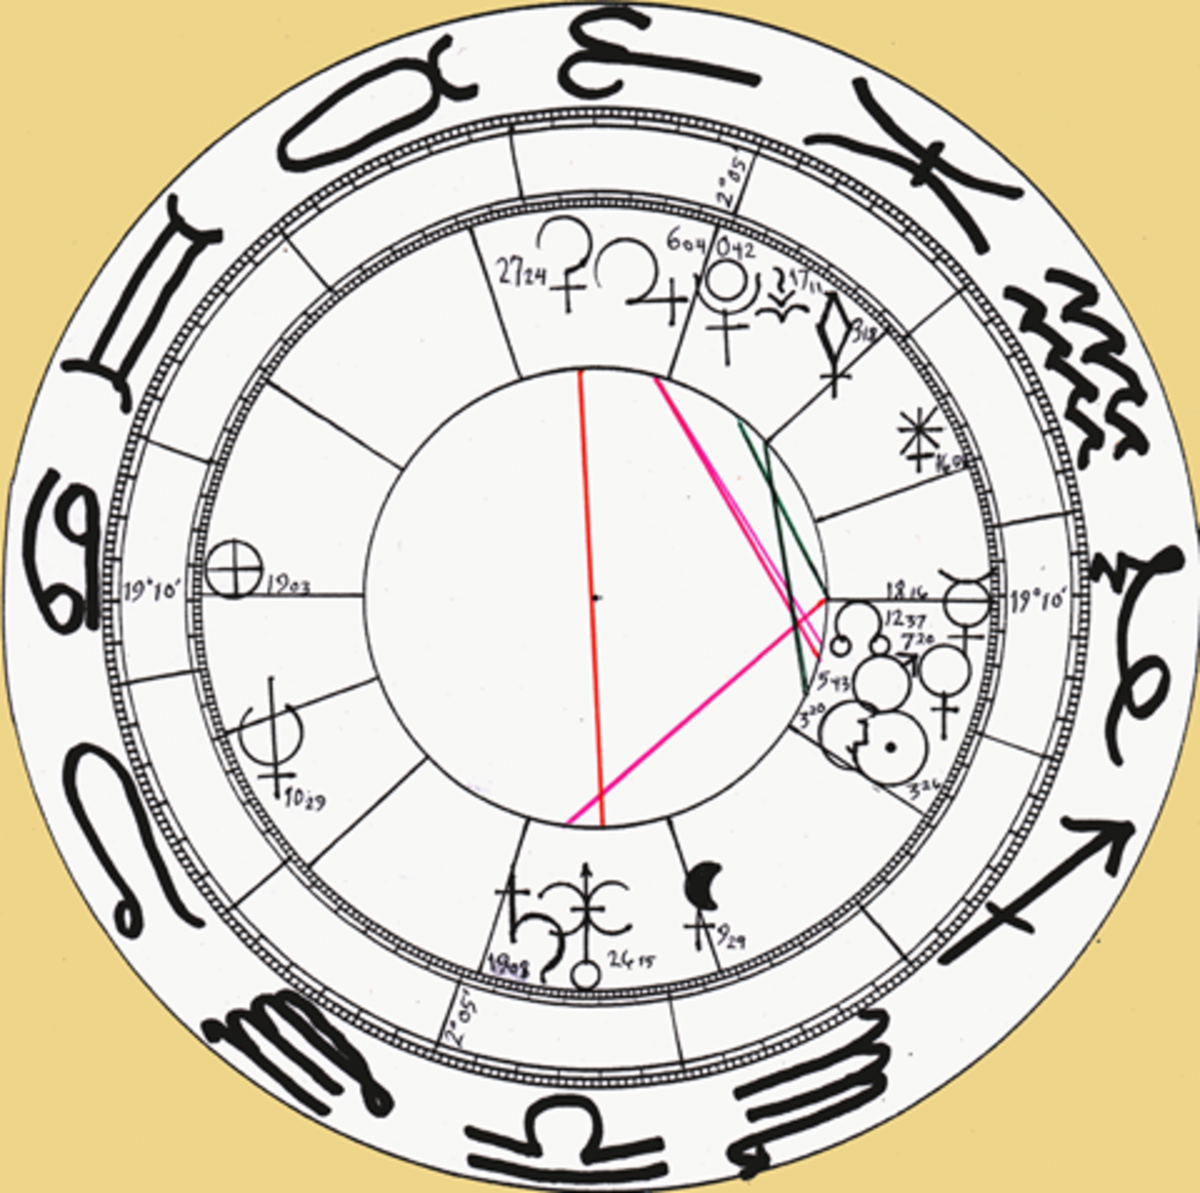 Author's recreation of the Helice, Greece earthquake of the 4th century BC, in astrological chart form.